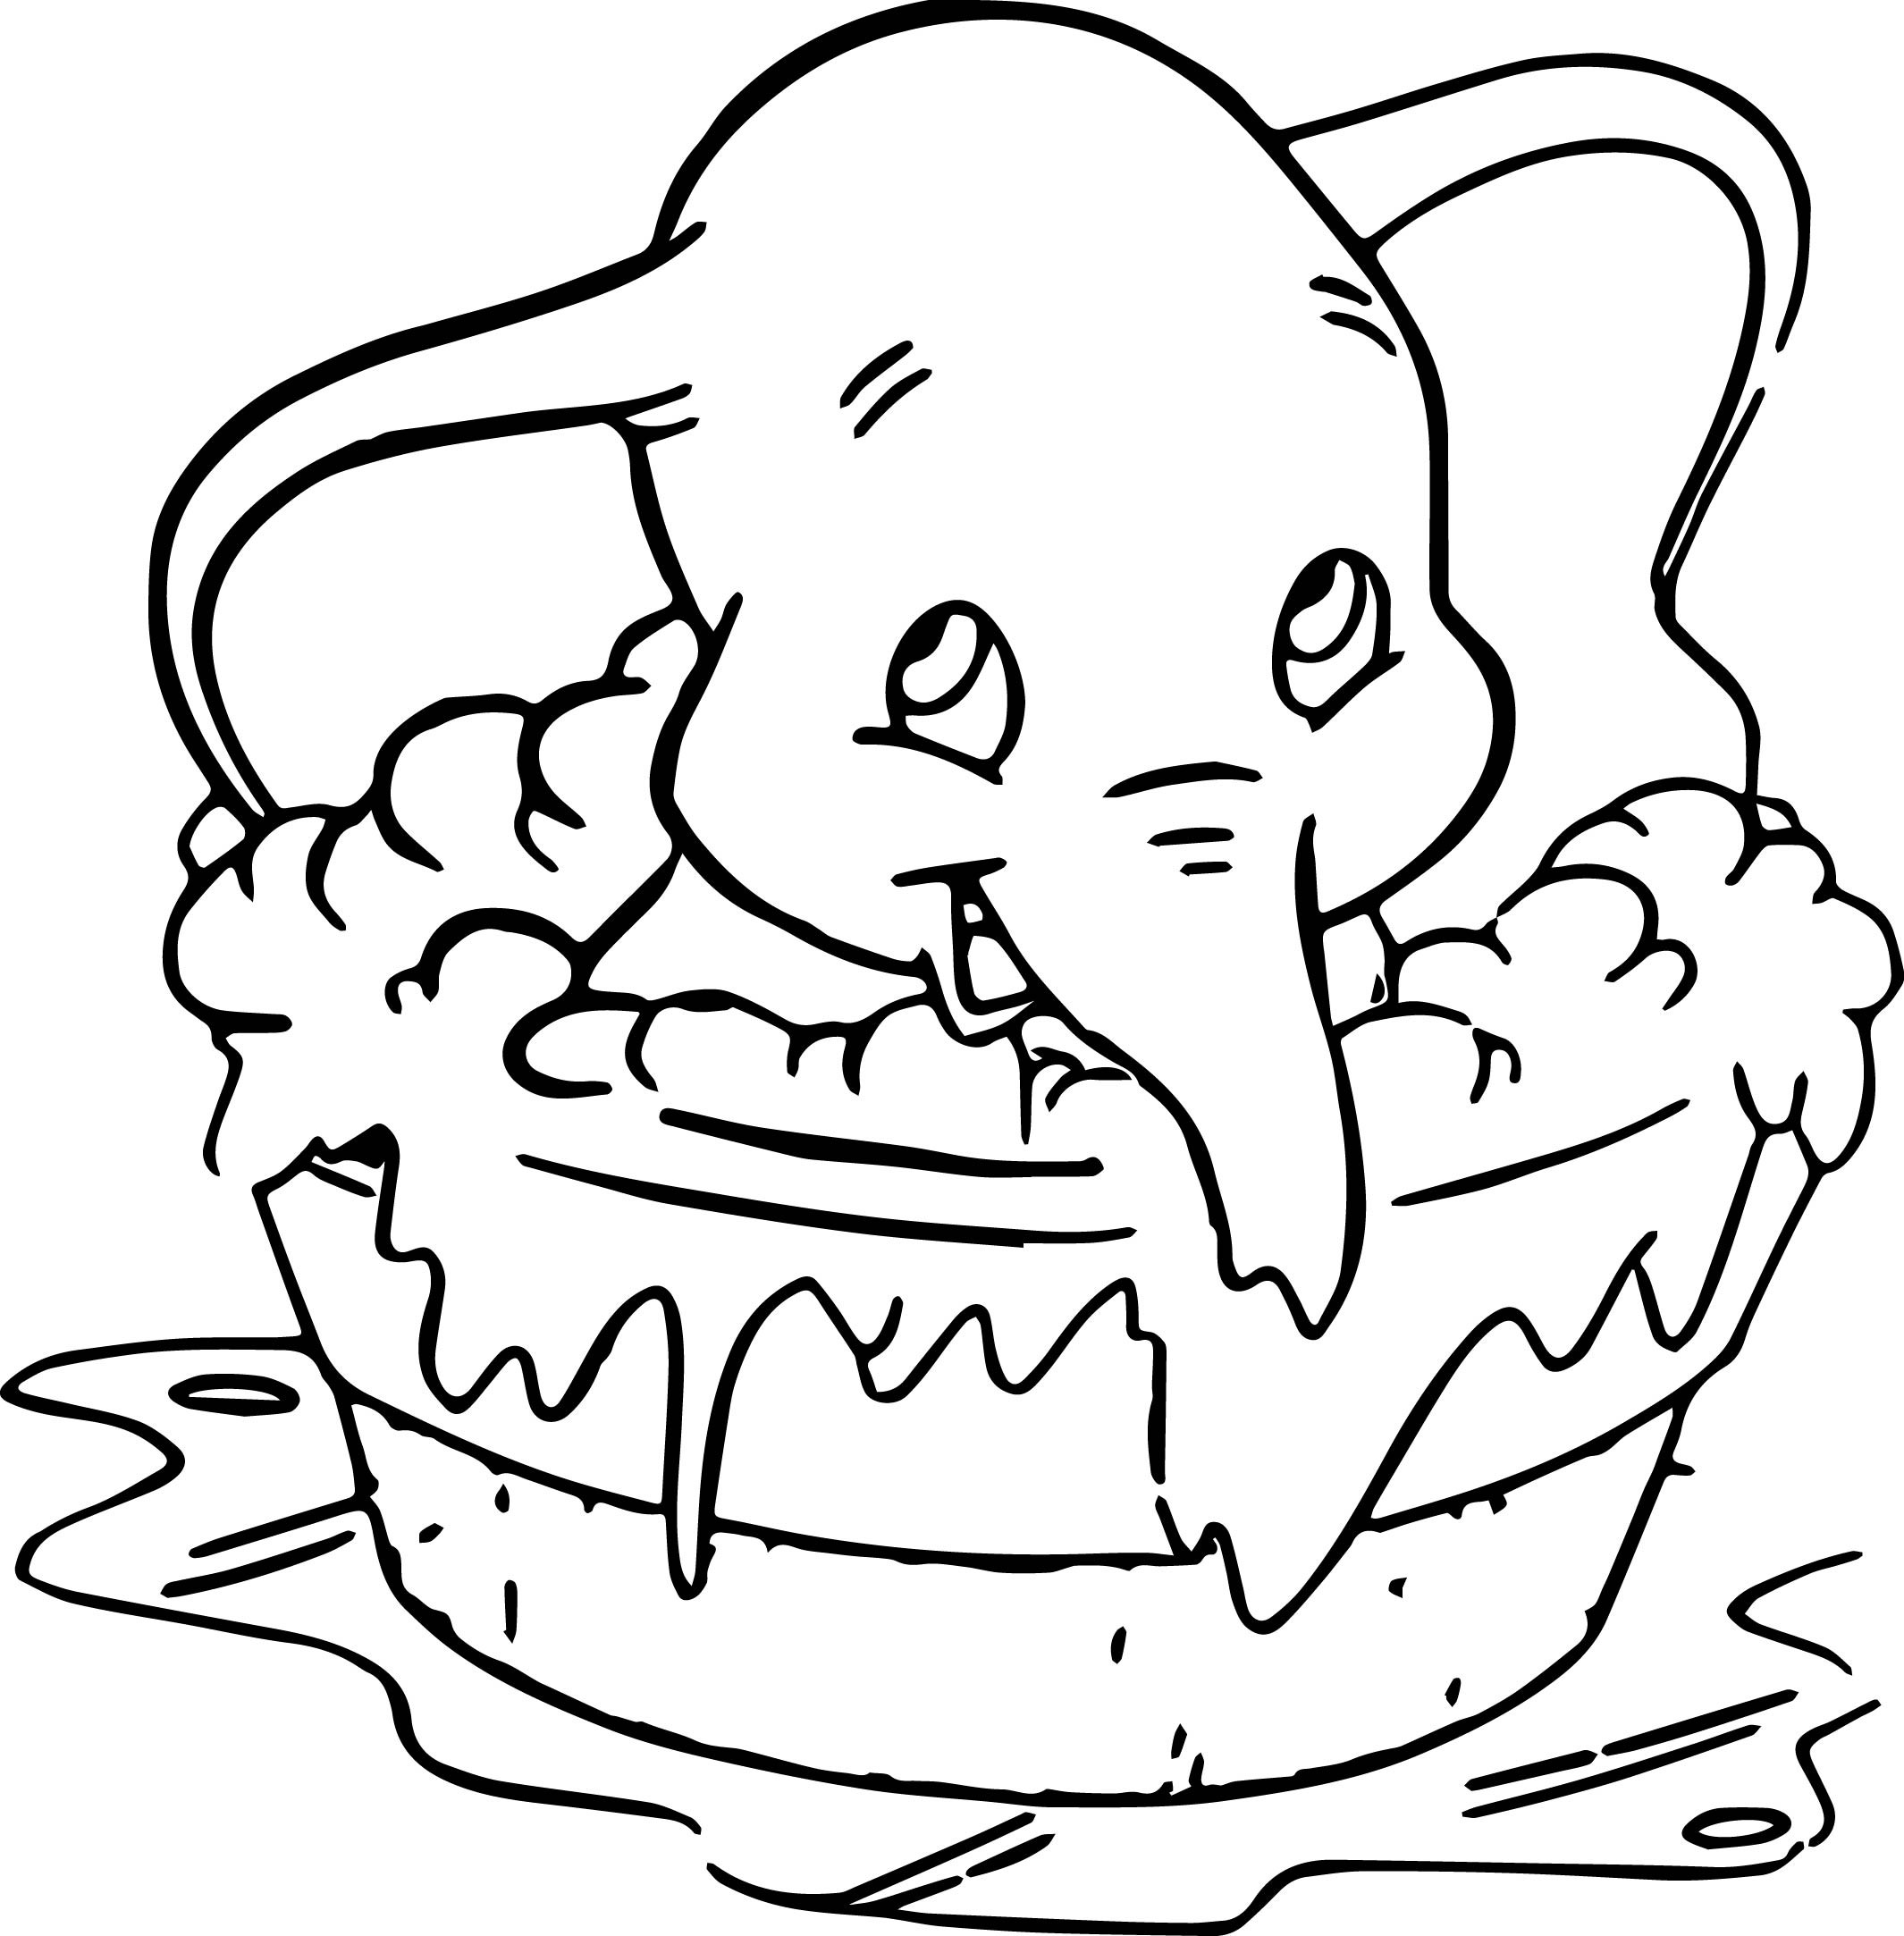 2130x2166 Dumbo Coloring Pages New Disney Elephant